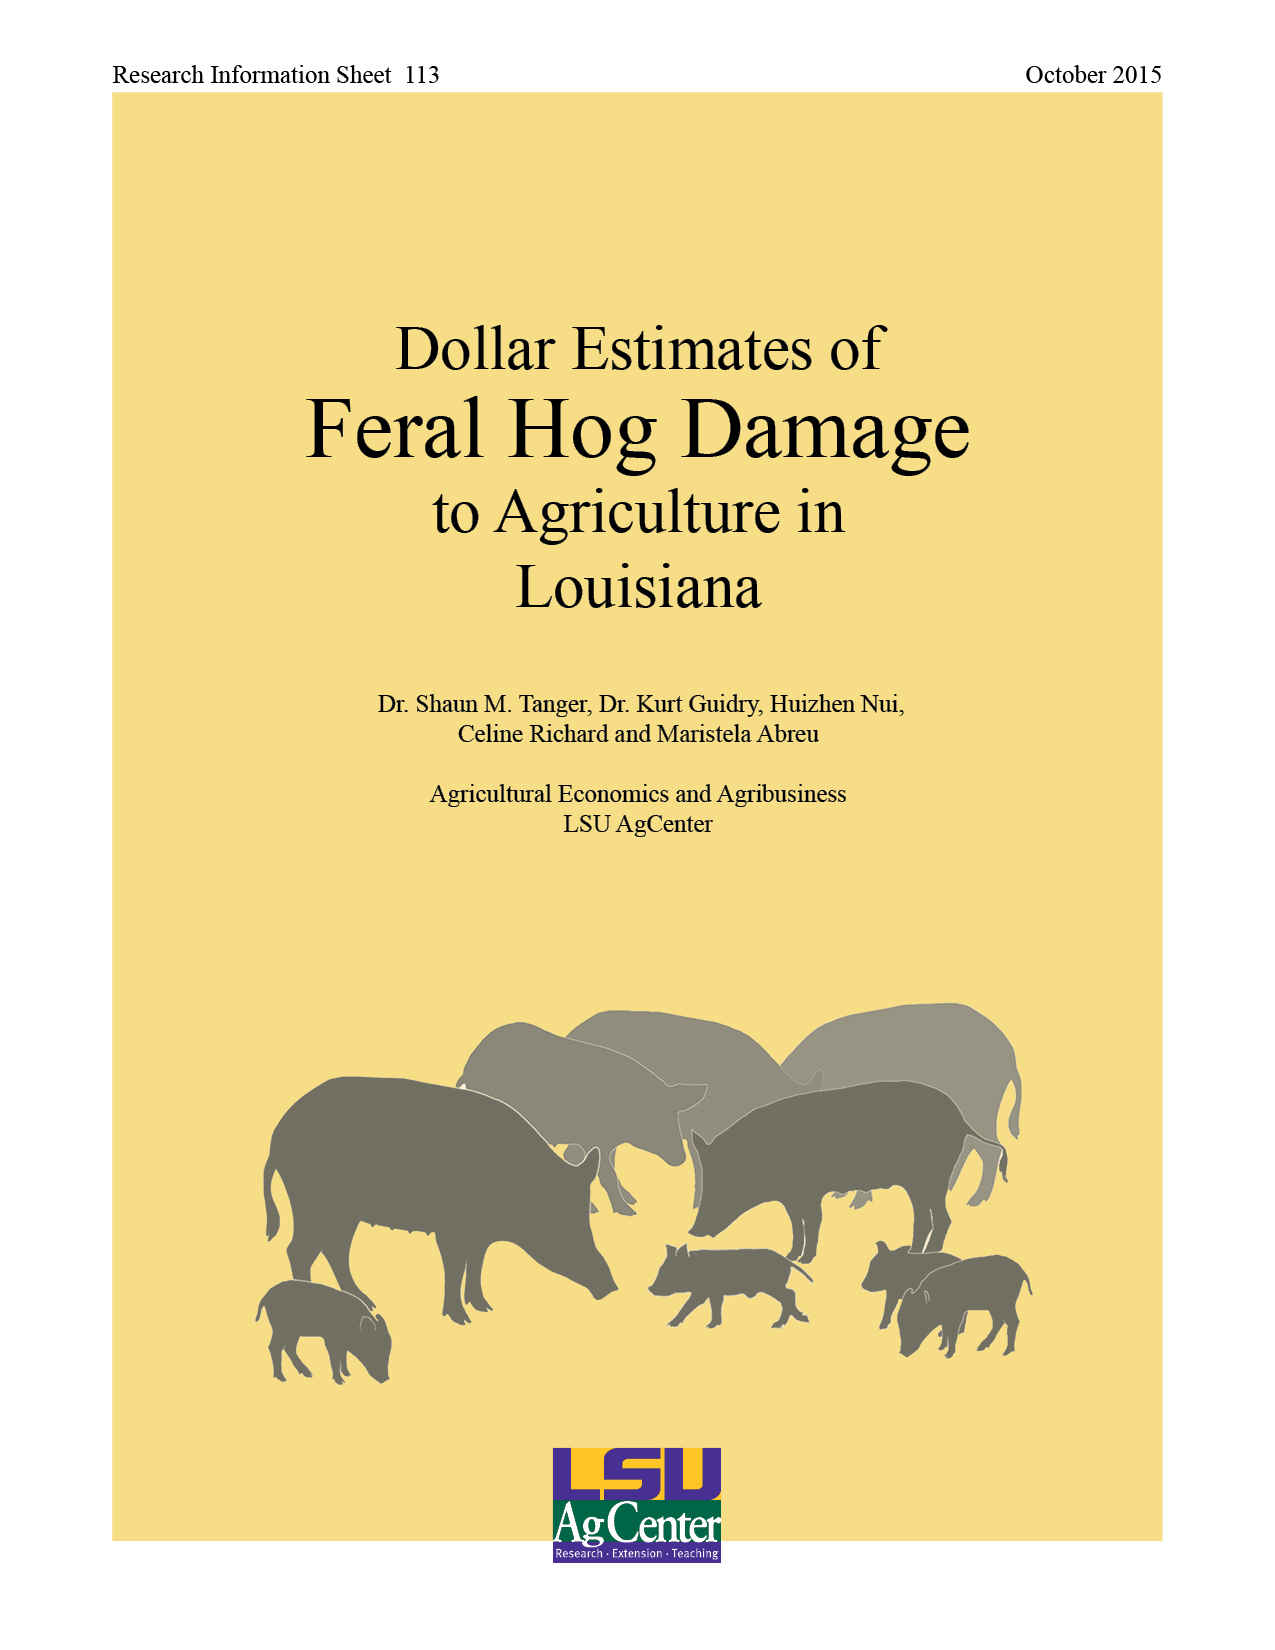 Dollar Estimates of Feral Hog Damage to Agriculture in Louisiana